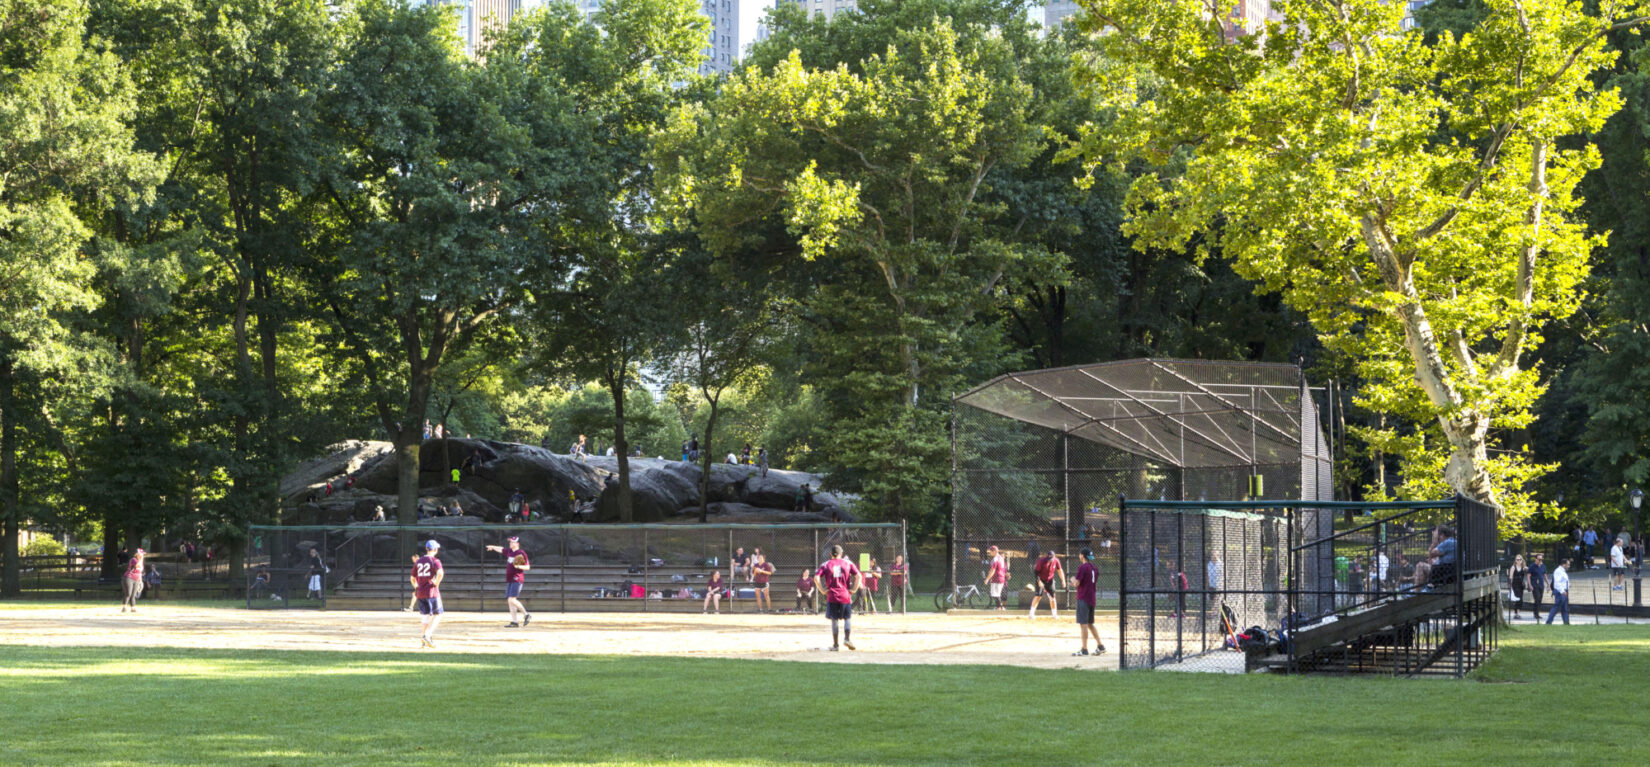 A softball game takes place under trees and the skyline of 59th Street